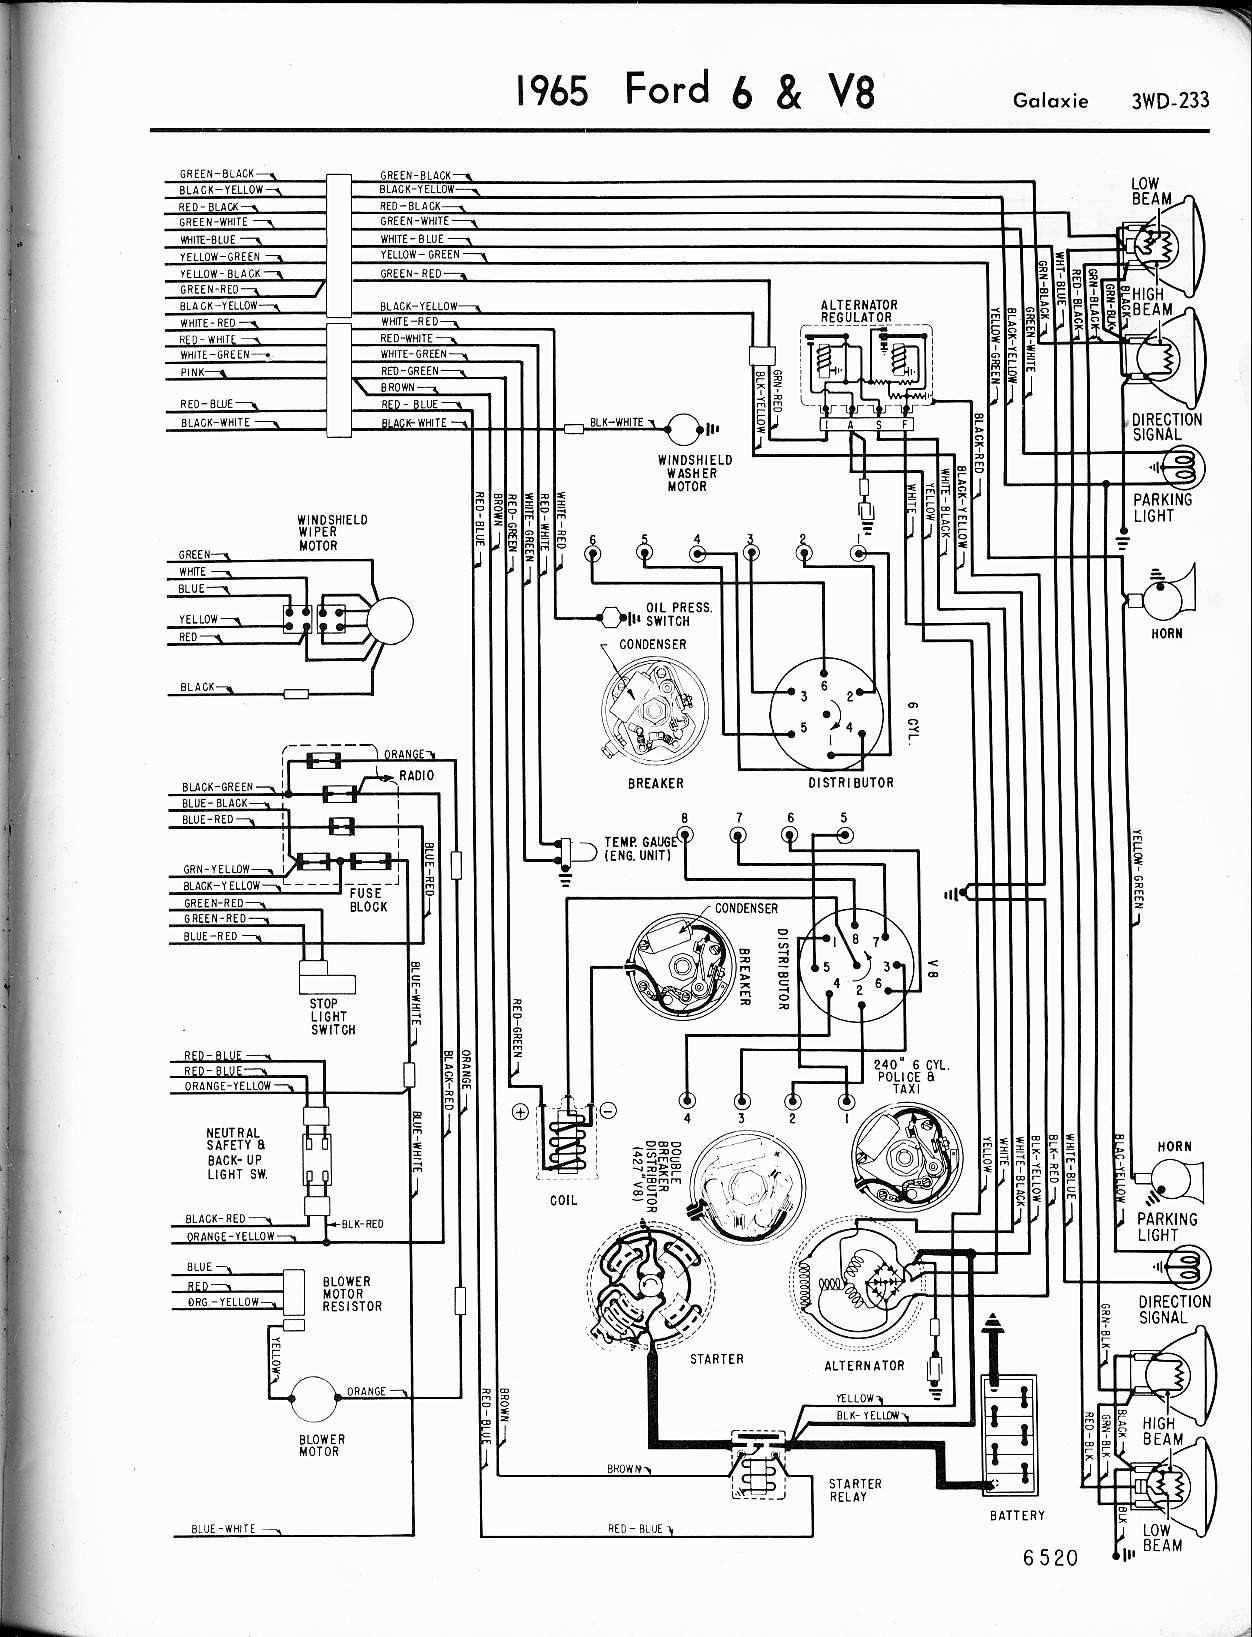 2002 ford Focus Wiring Diagram Wiring Diagram ford Galaxy 2002 Daily Update Wiring Diagram Of 2002 ford Focus Wiring Diagram Adt Focus Wiring Diagram Go Wiring Diagram